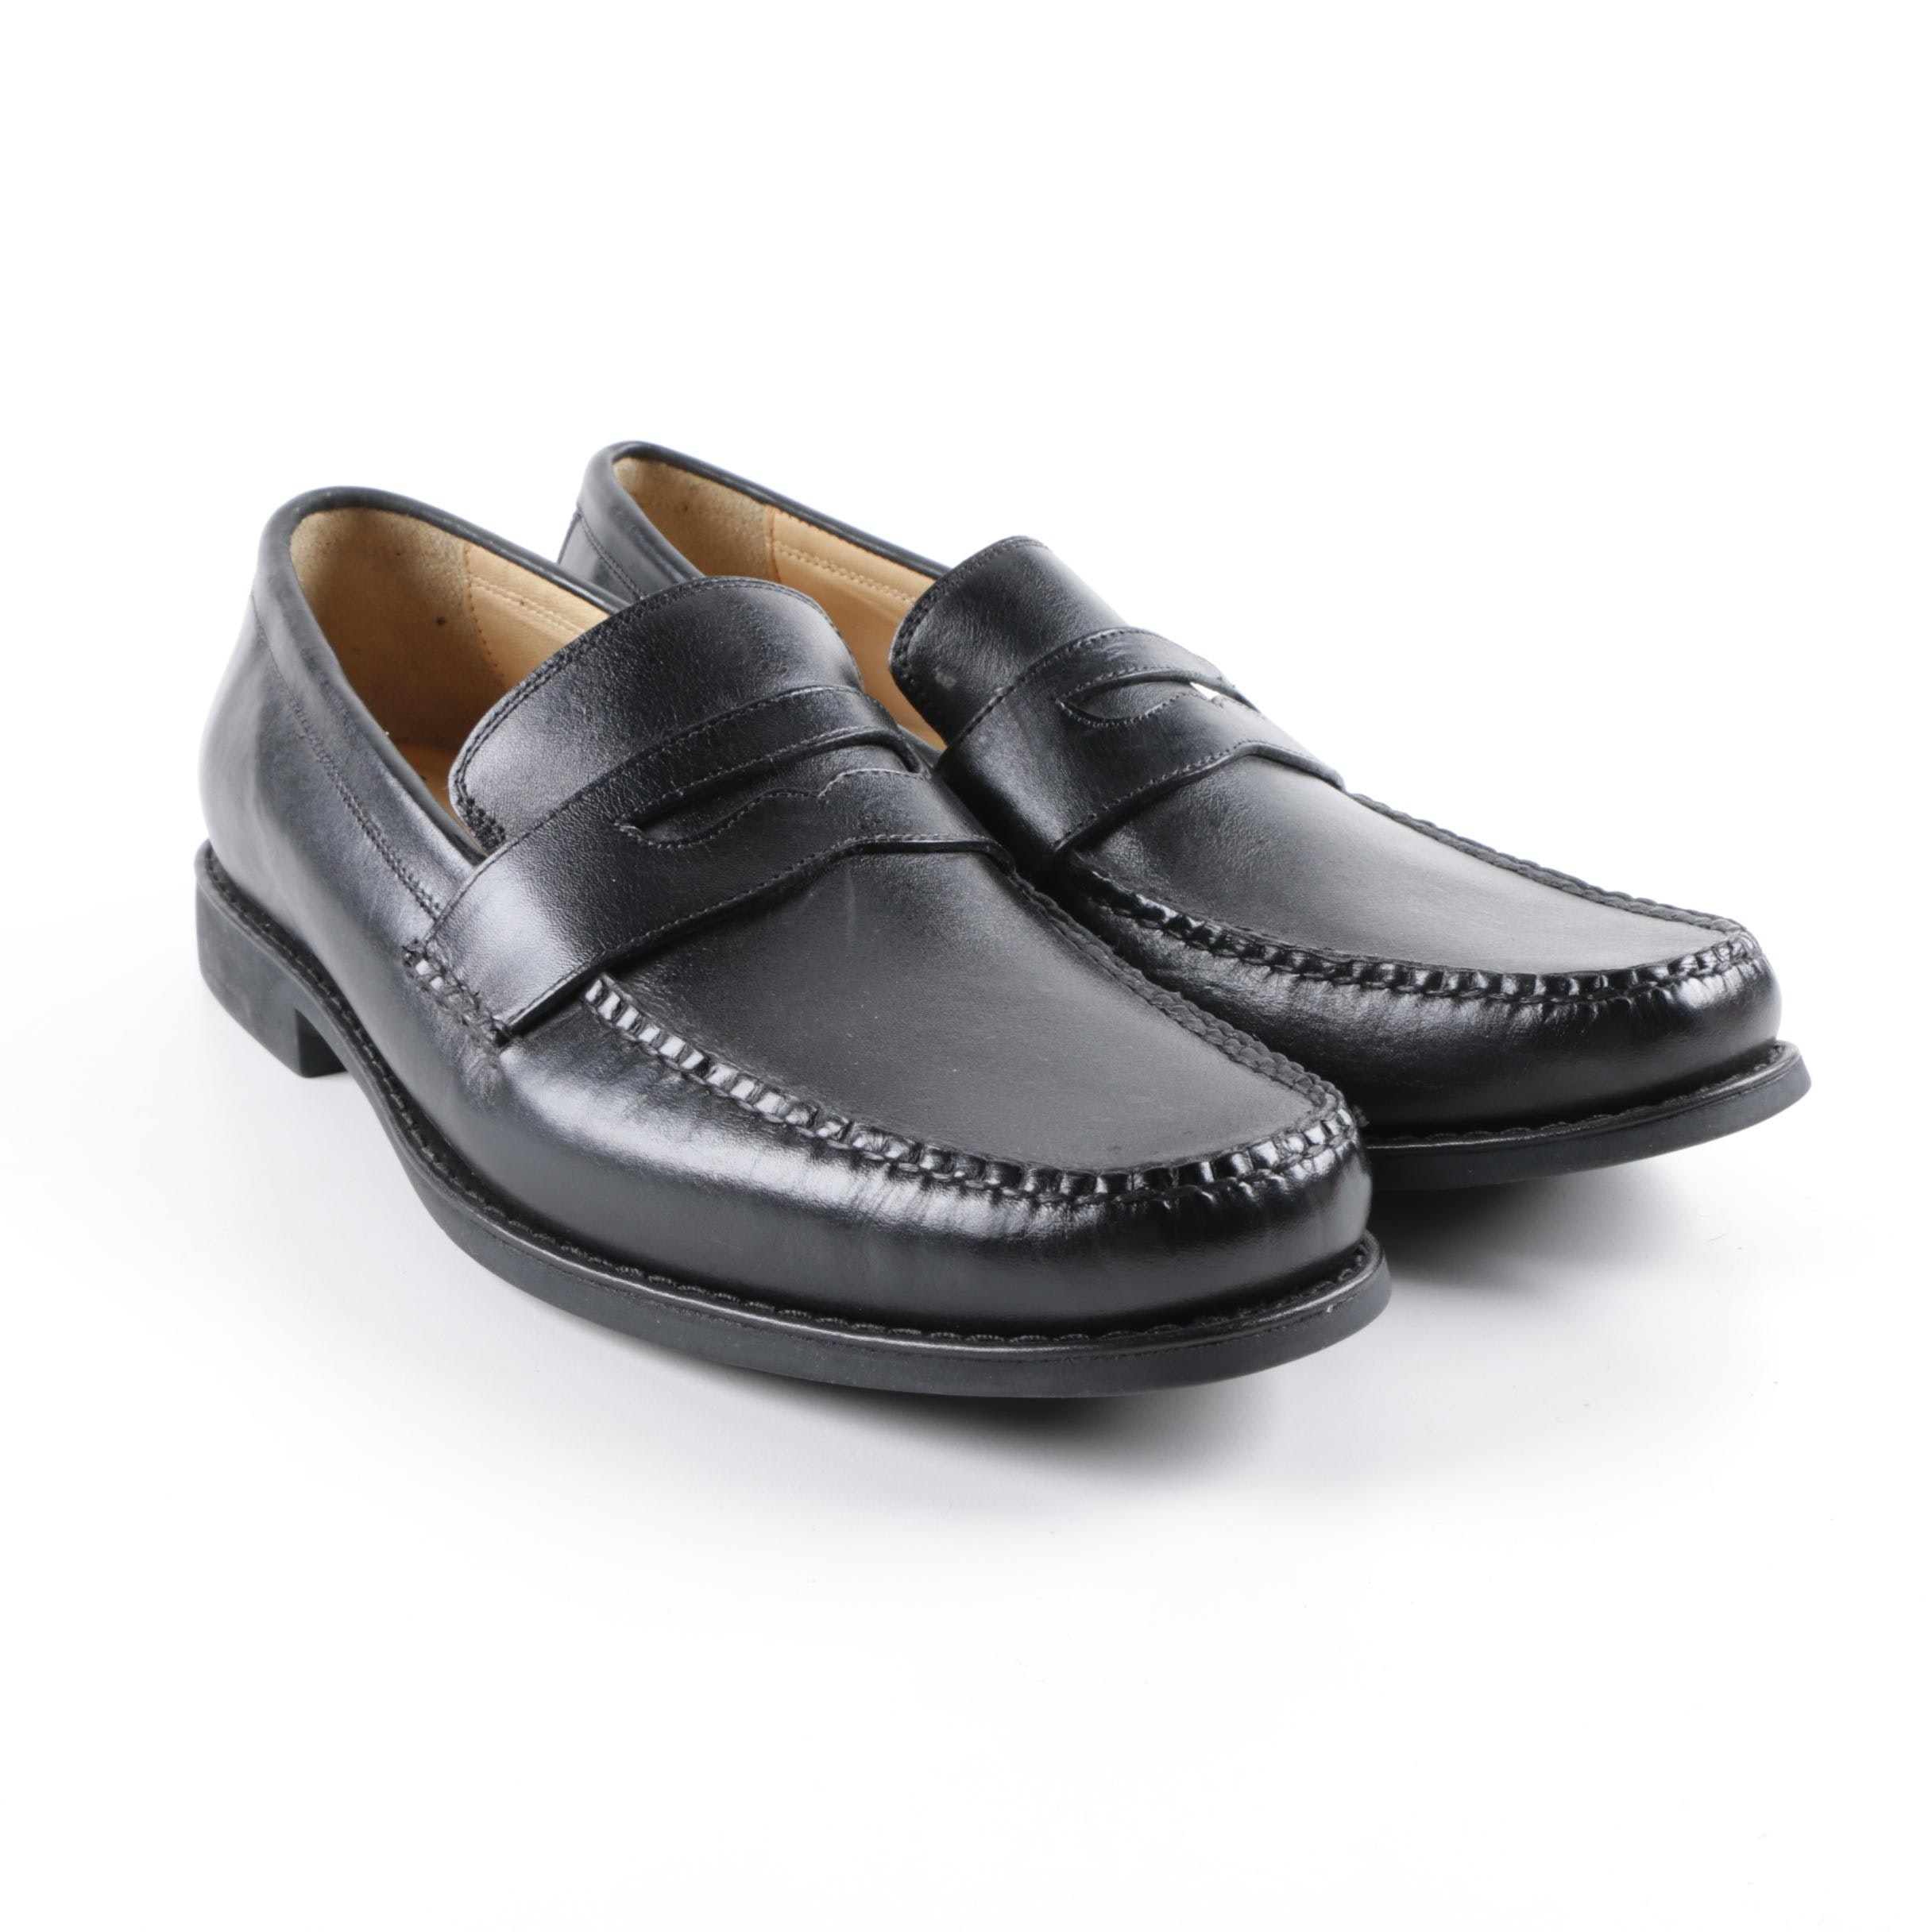 Men's Johnston & Murphy Black Leather Loafers